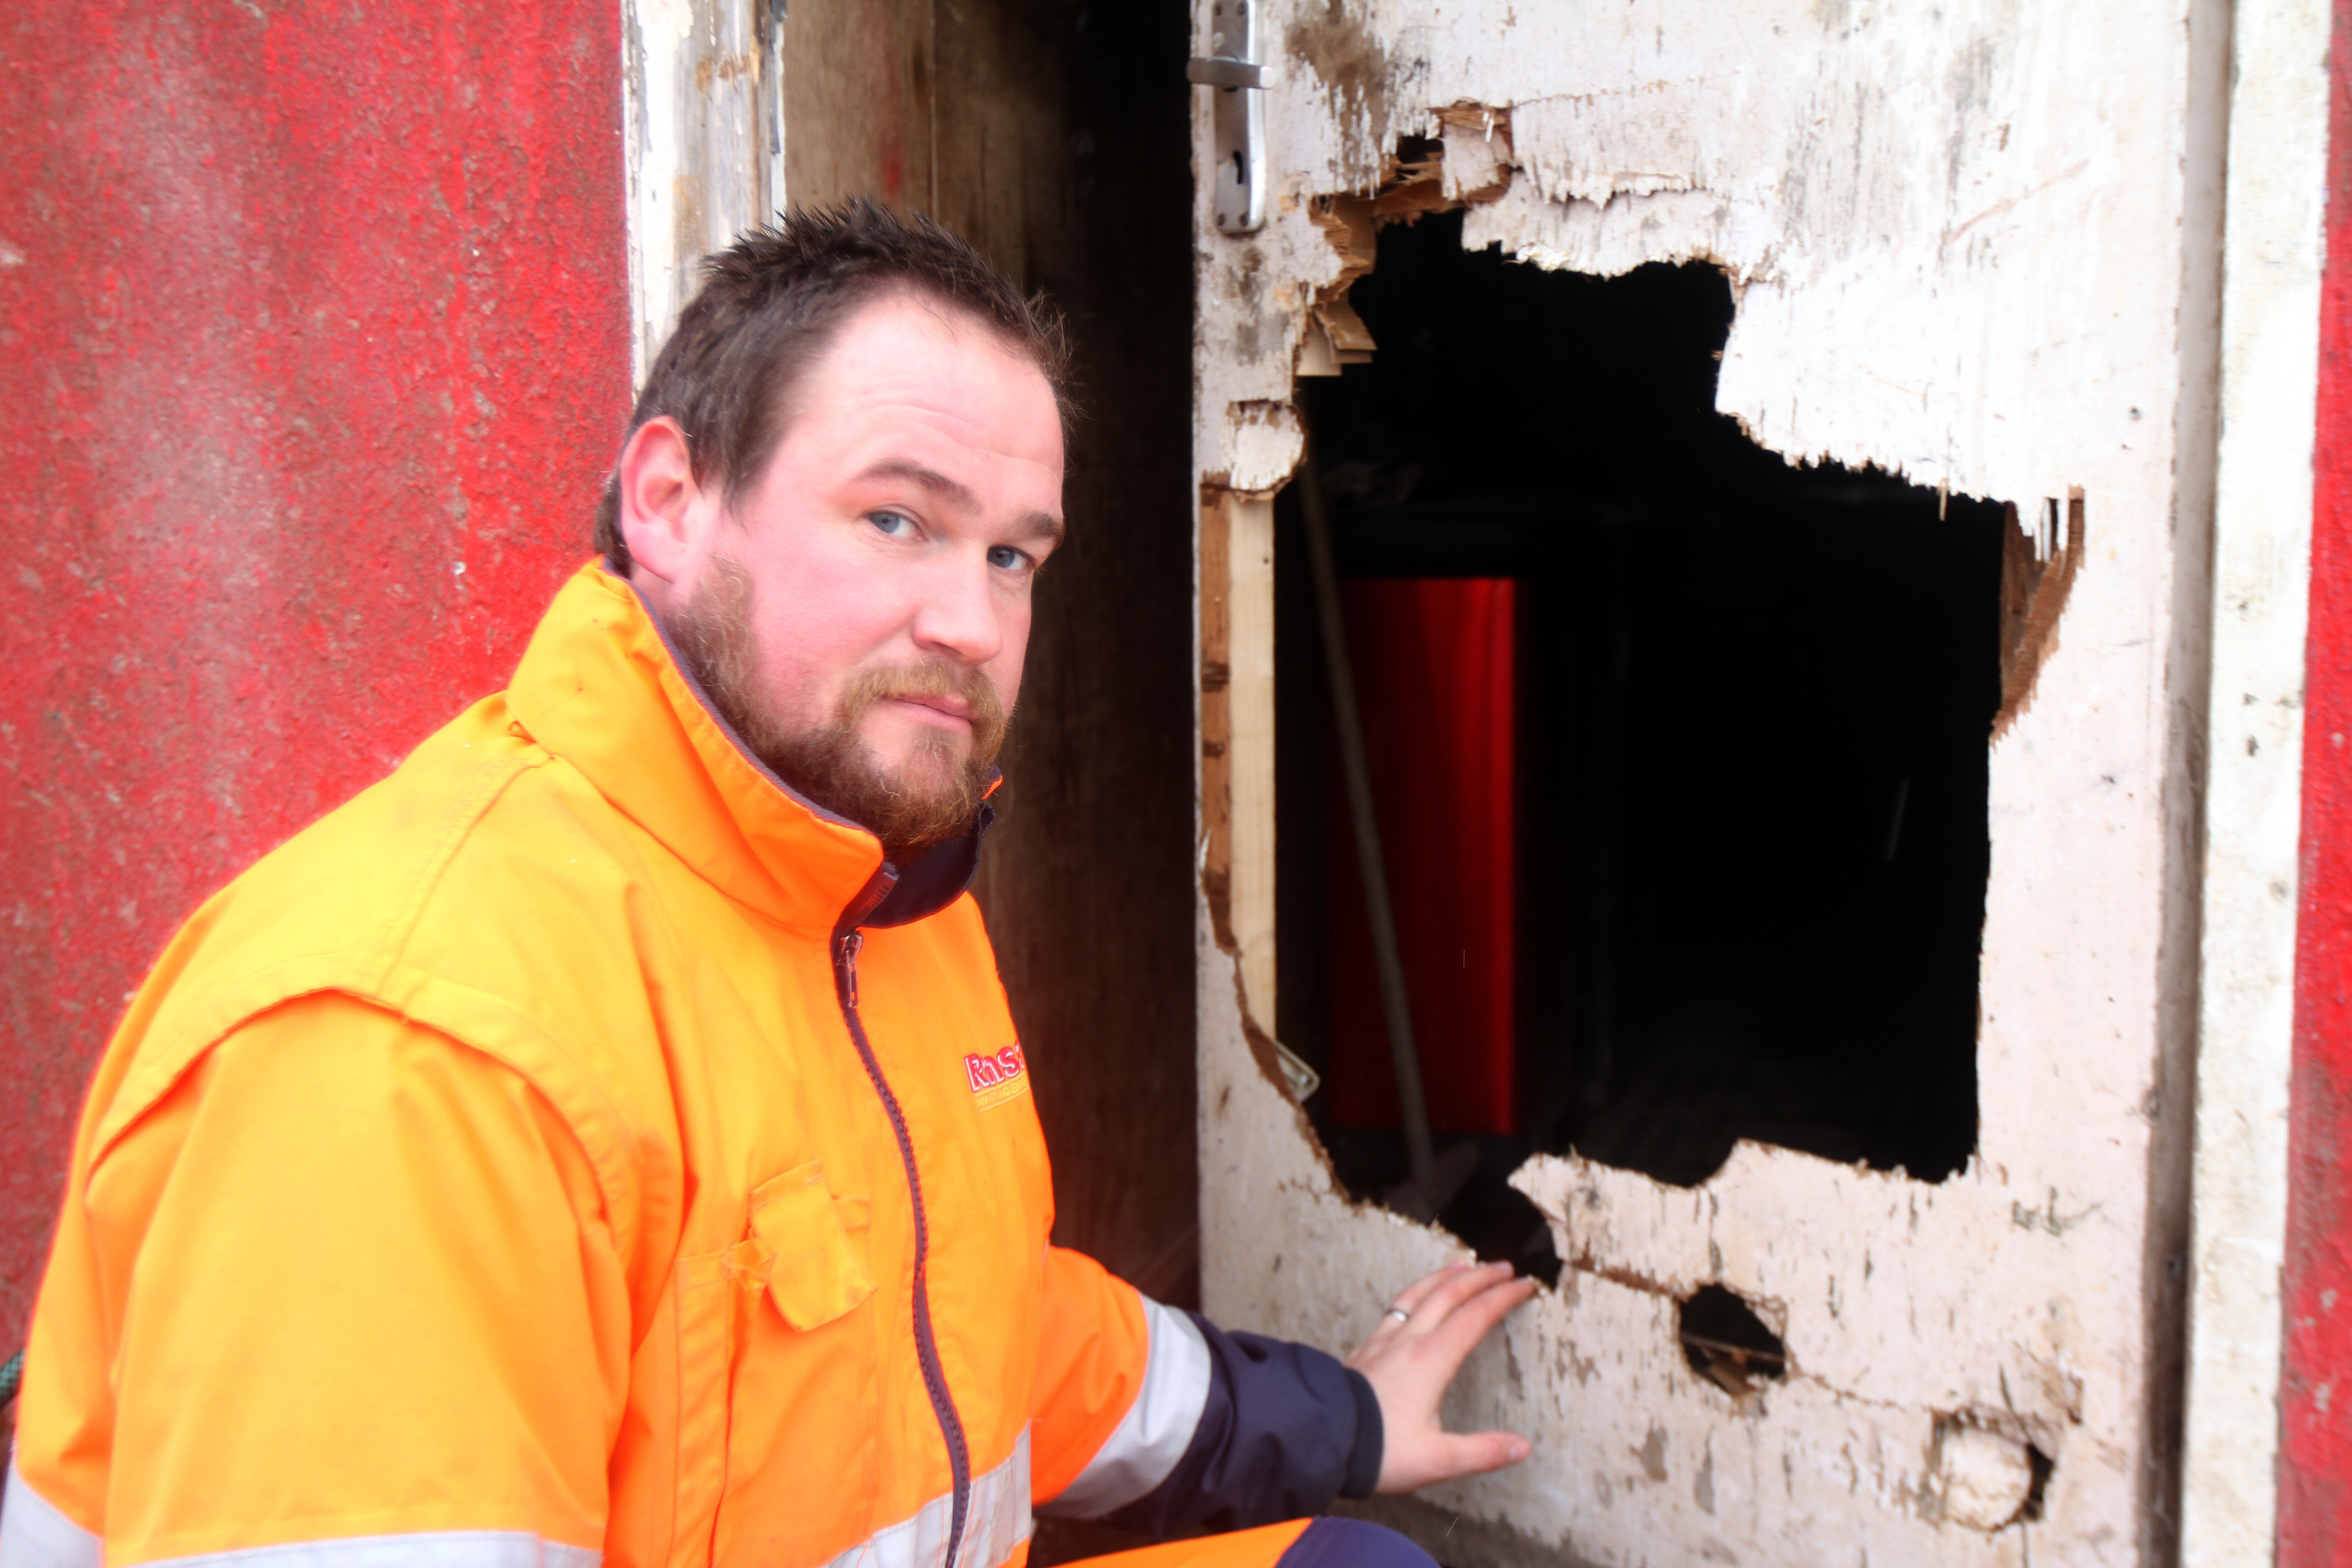 James Ross of Ramsay Skip hire beside some of the damaged property.